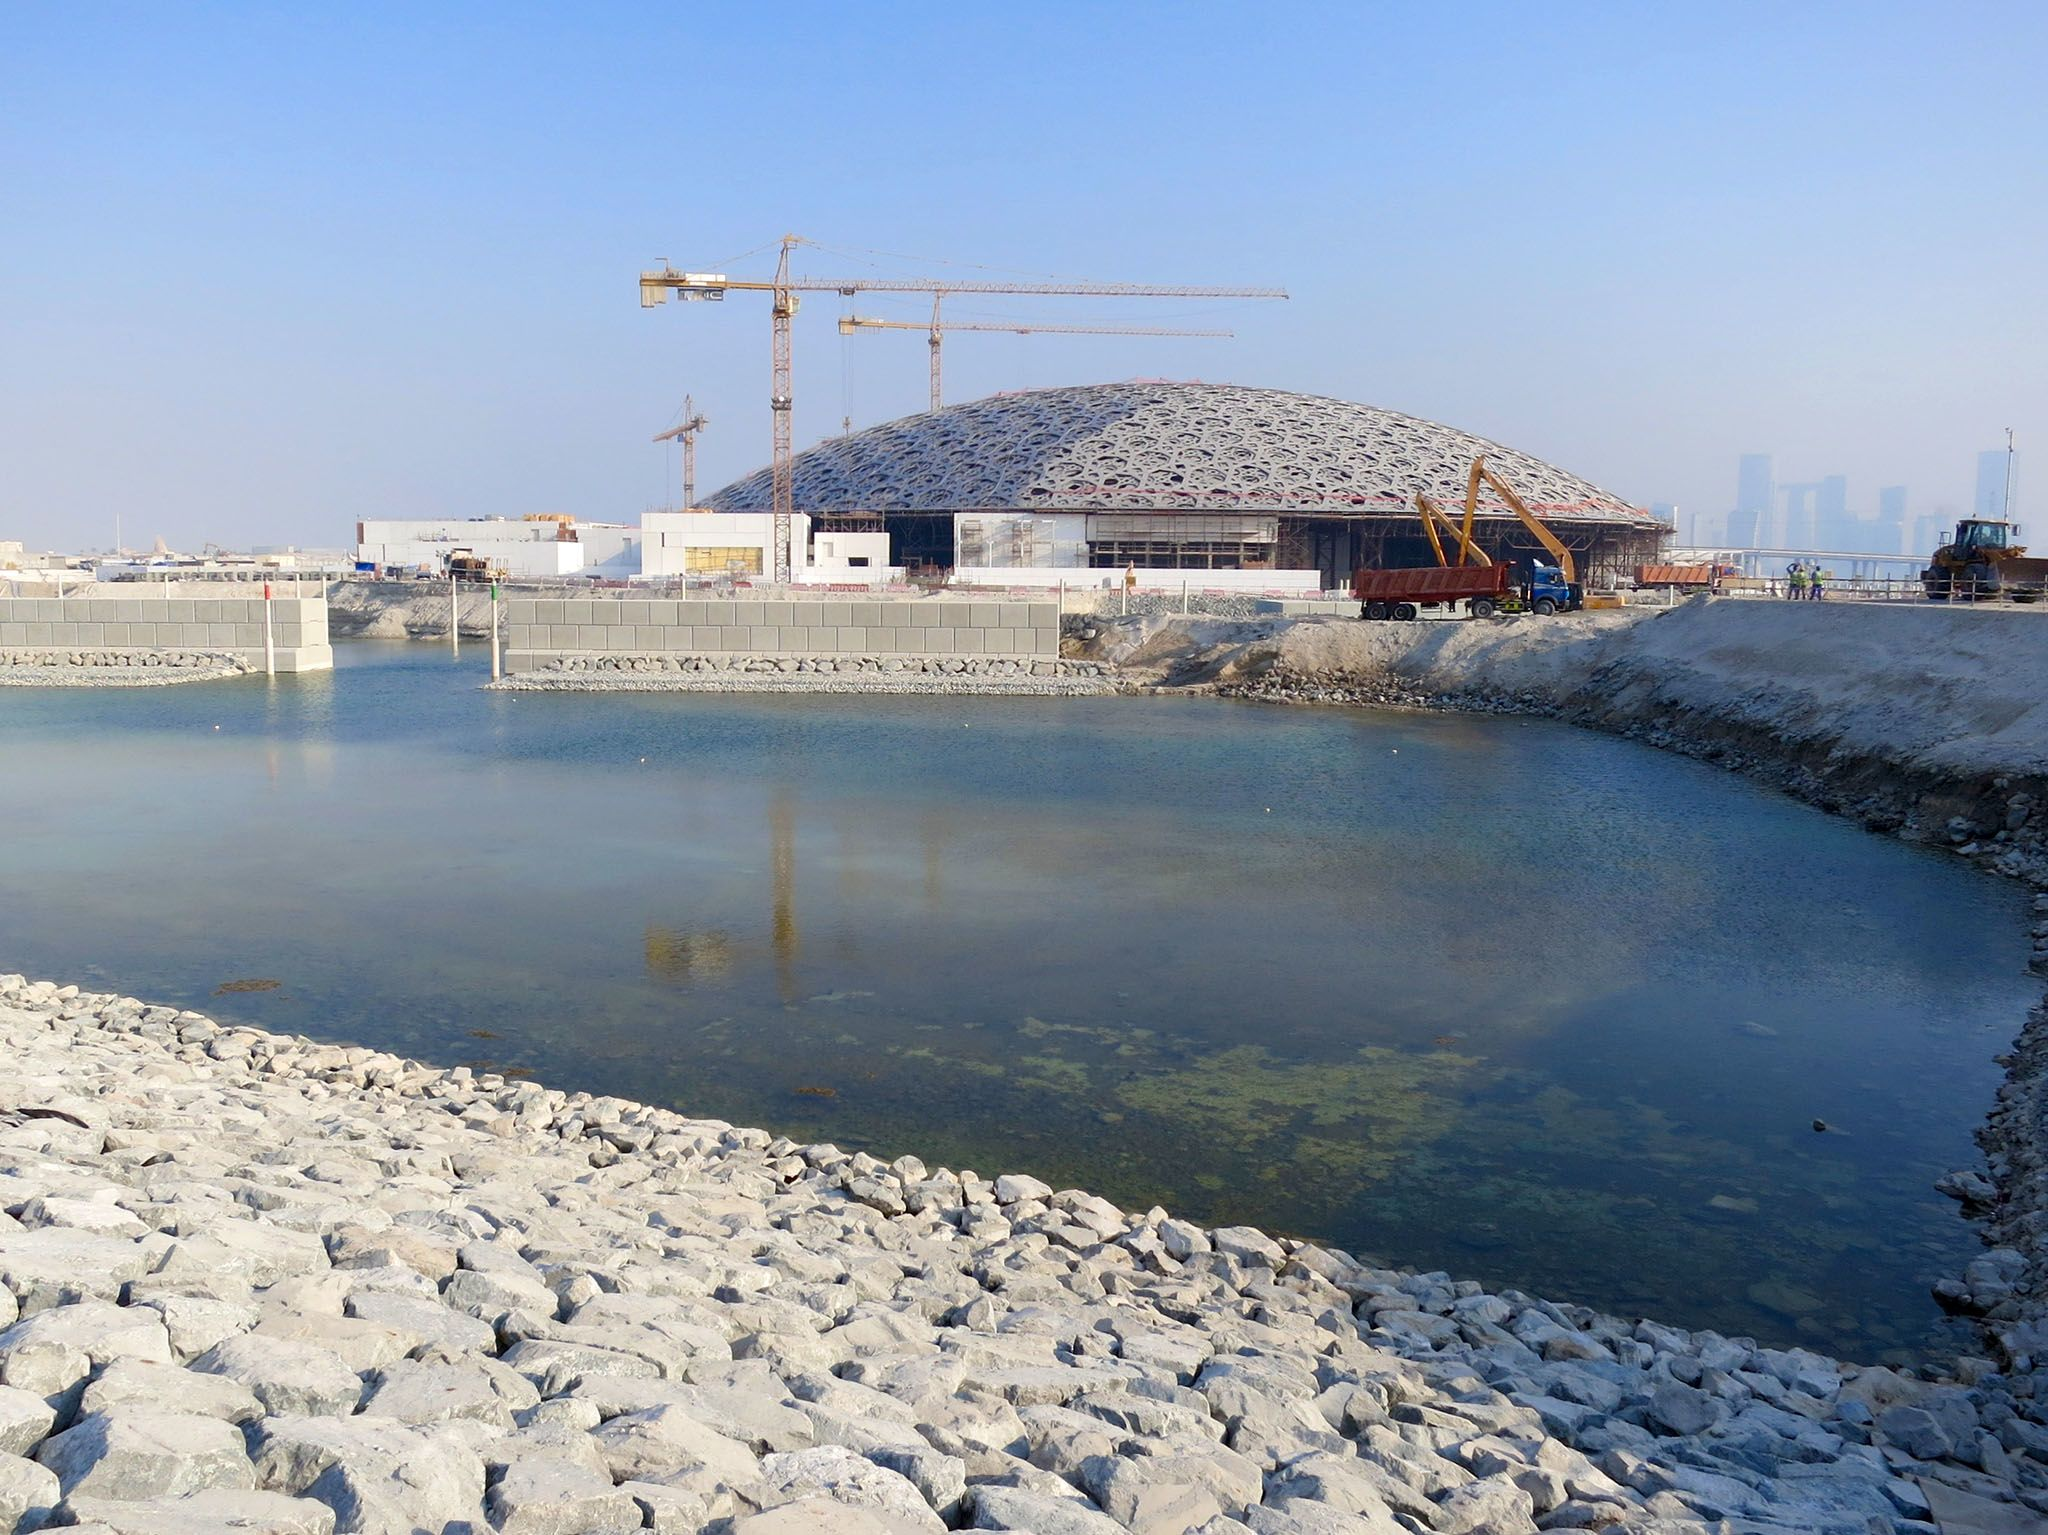 Abu Dhabi:  Exterior of the Louvre Ahu Dhabi, progress of marine works. This image is from... [Photo of the day - June 2018]